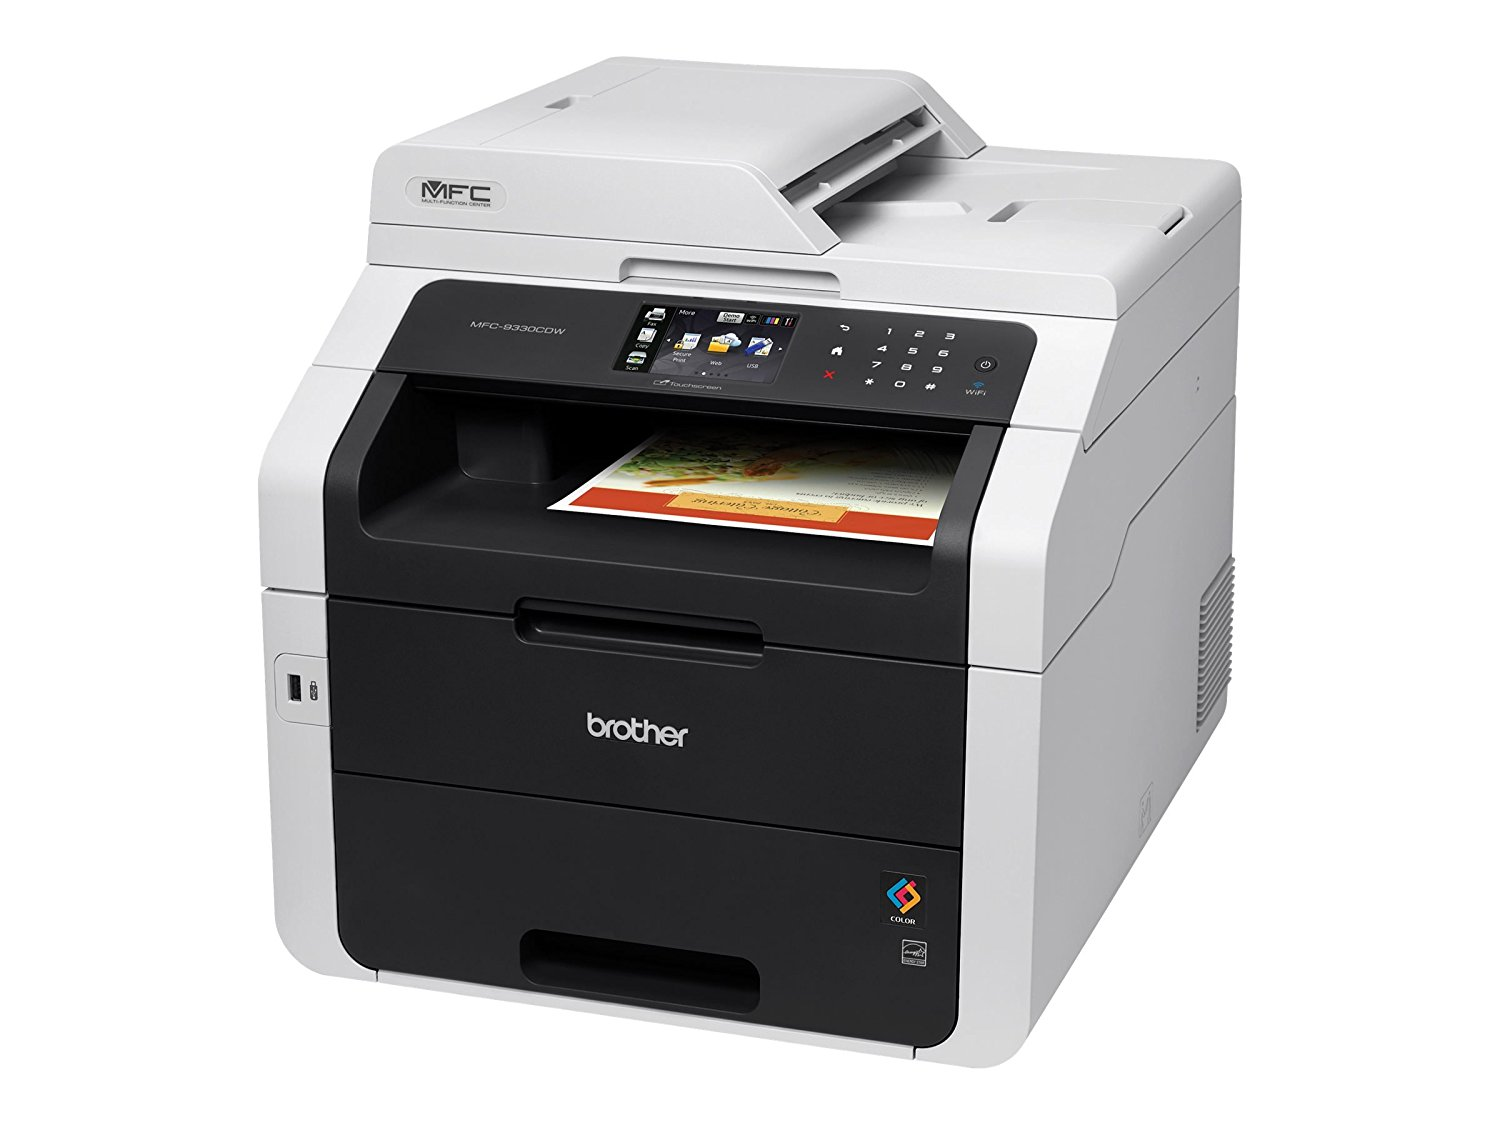 10 Best Brother Printer Black Friday 2021 & Cyber Monday Deals